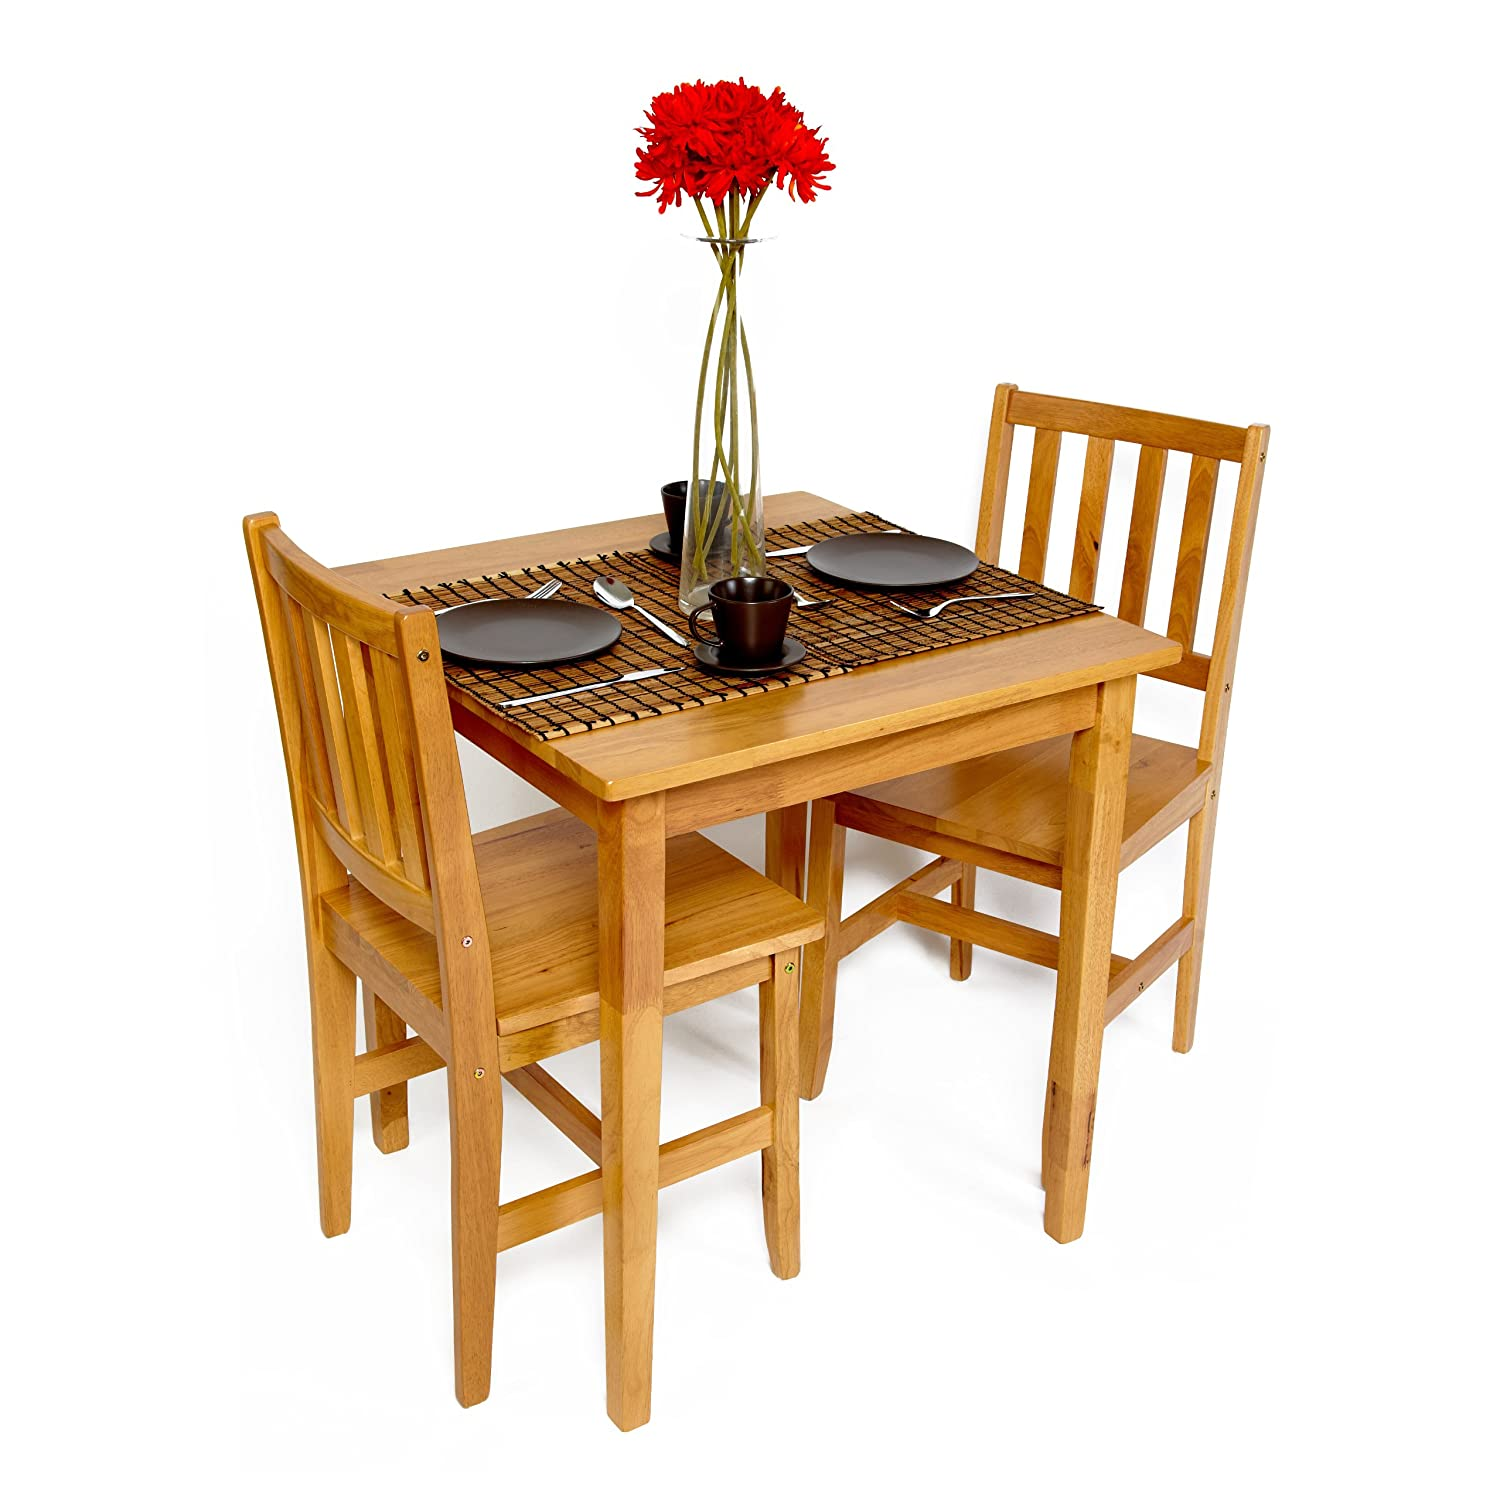 Table and chairs set dining bistro small cafe tables wood for Kitchen table and chairs for sale